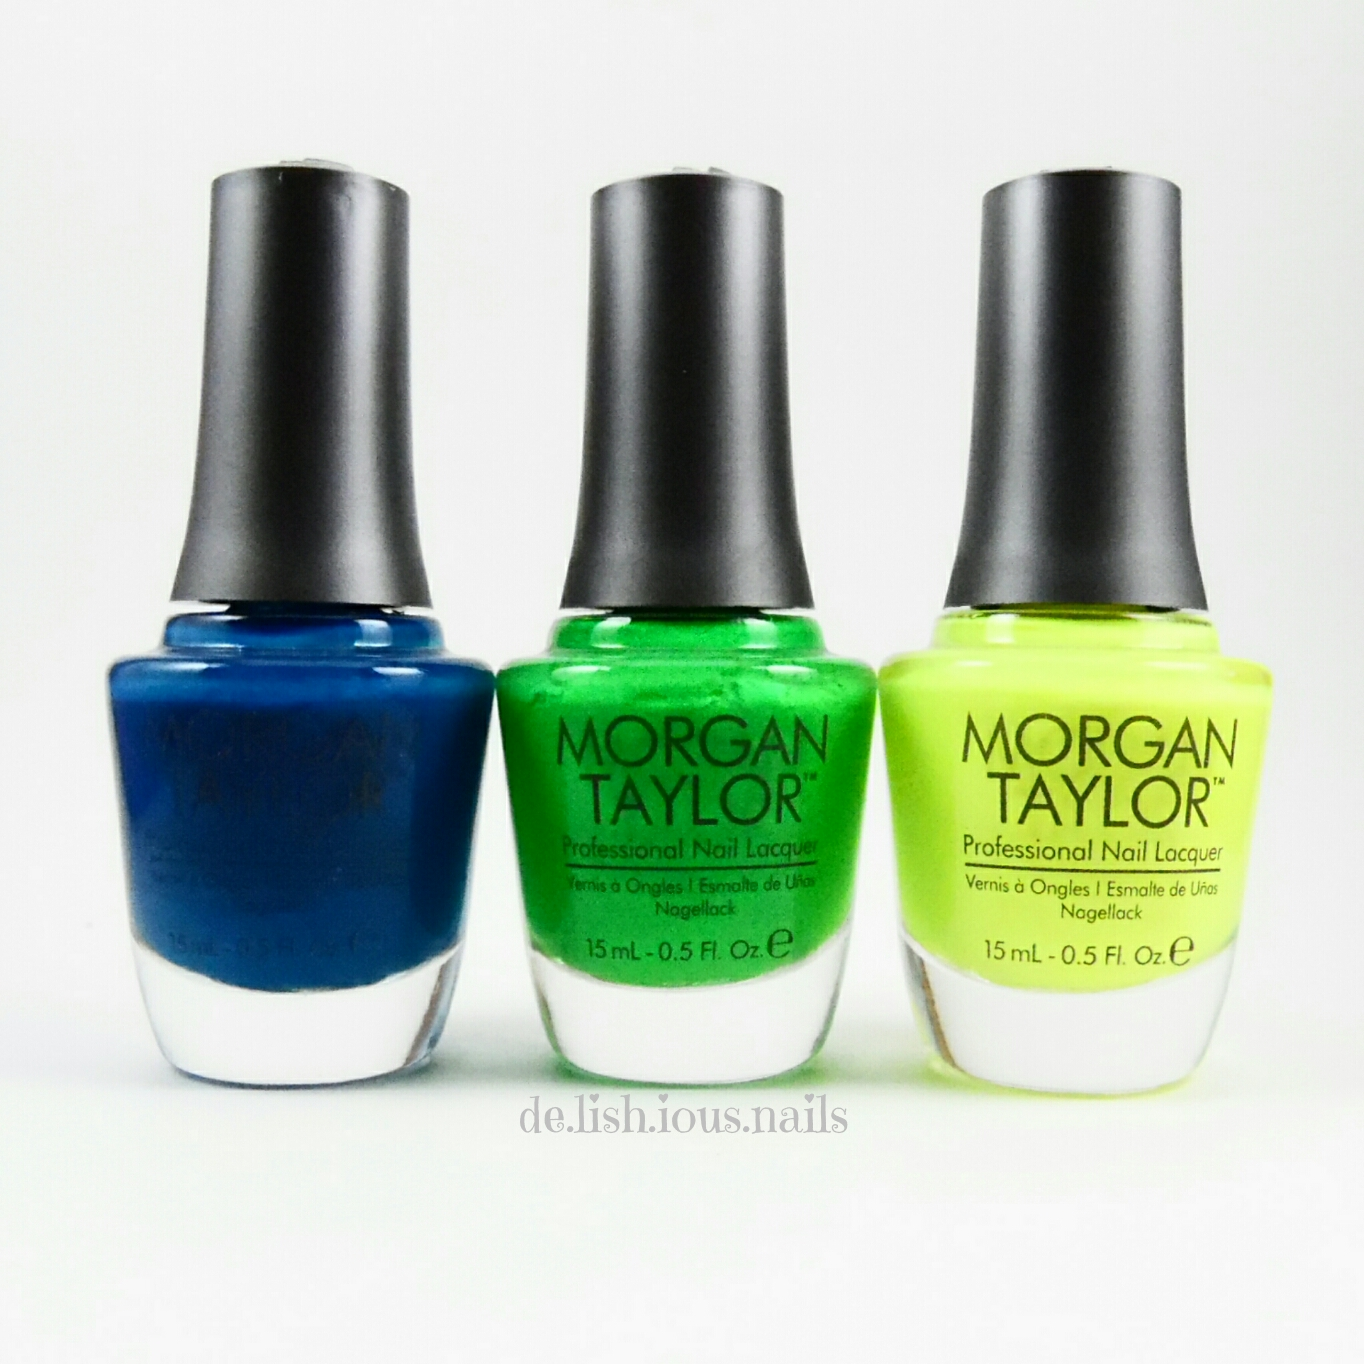 The Best Watermarble Polishes - Delishious Nails